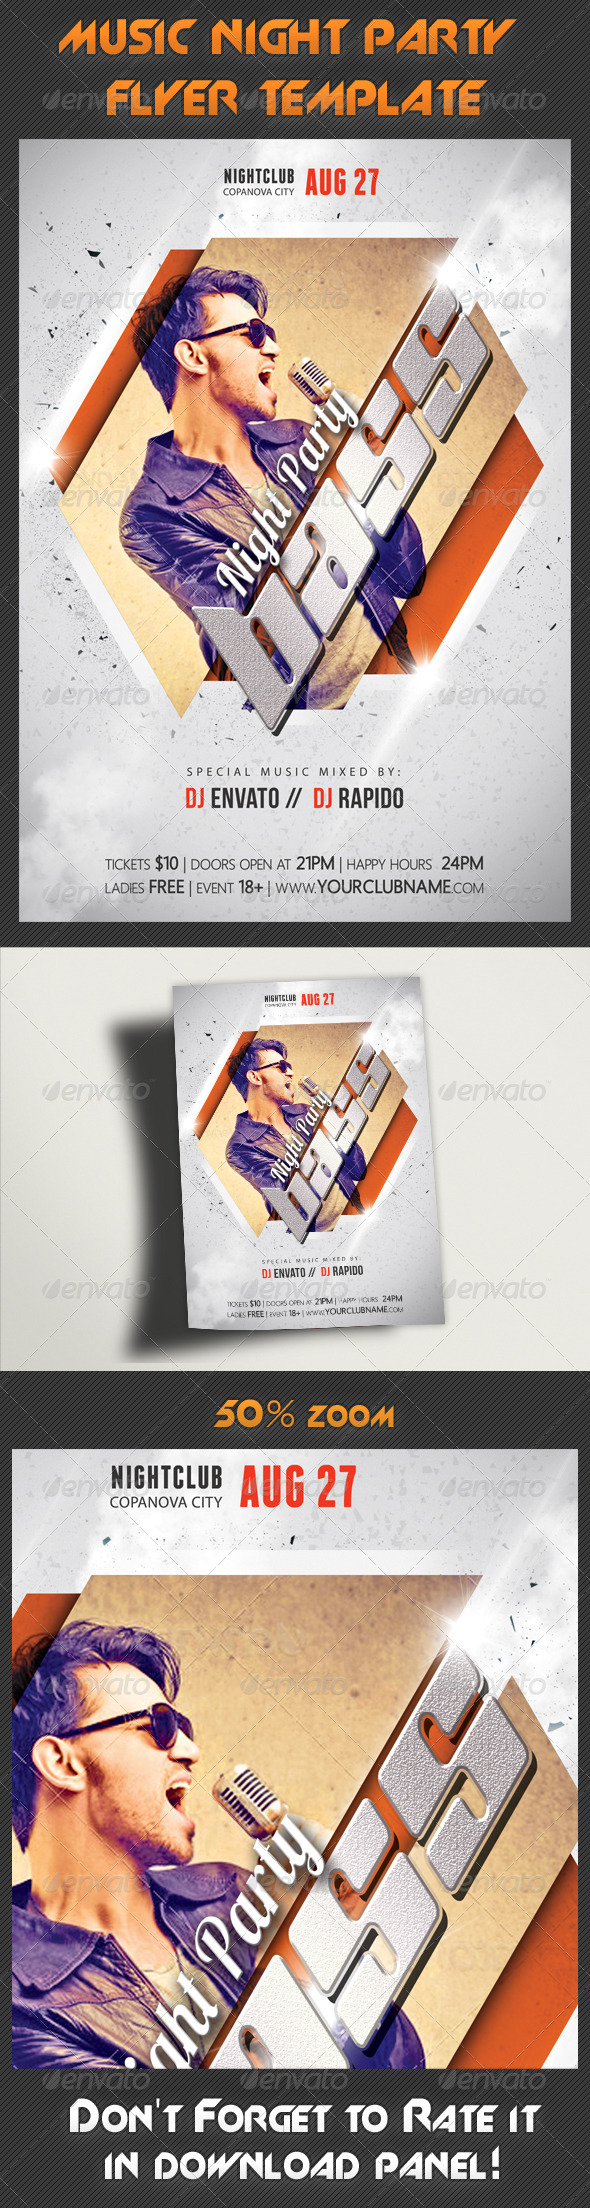 Music Night Party Flyer Template 18 - Clubs & Parties Events